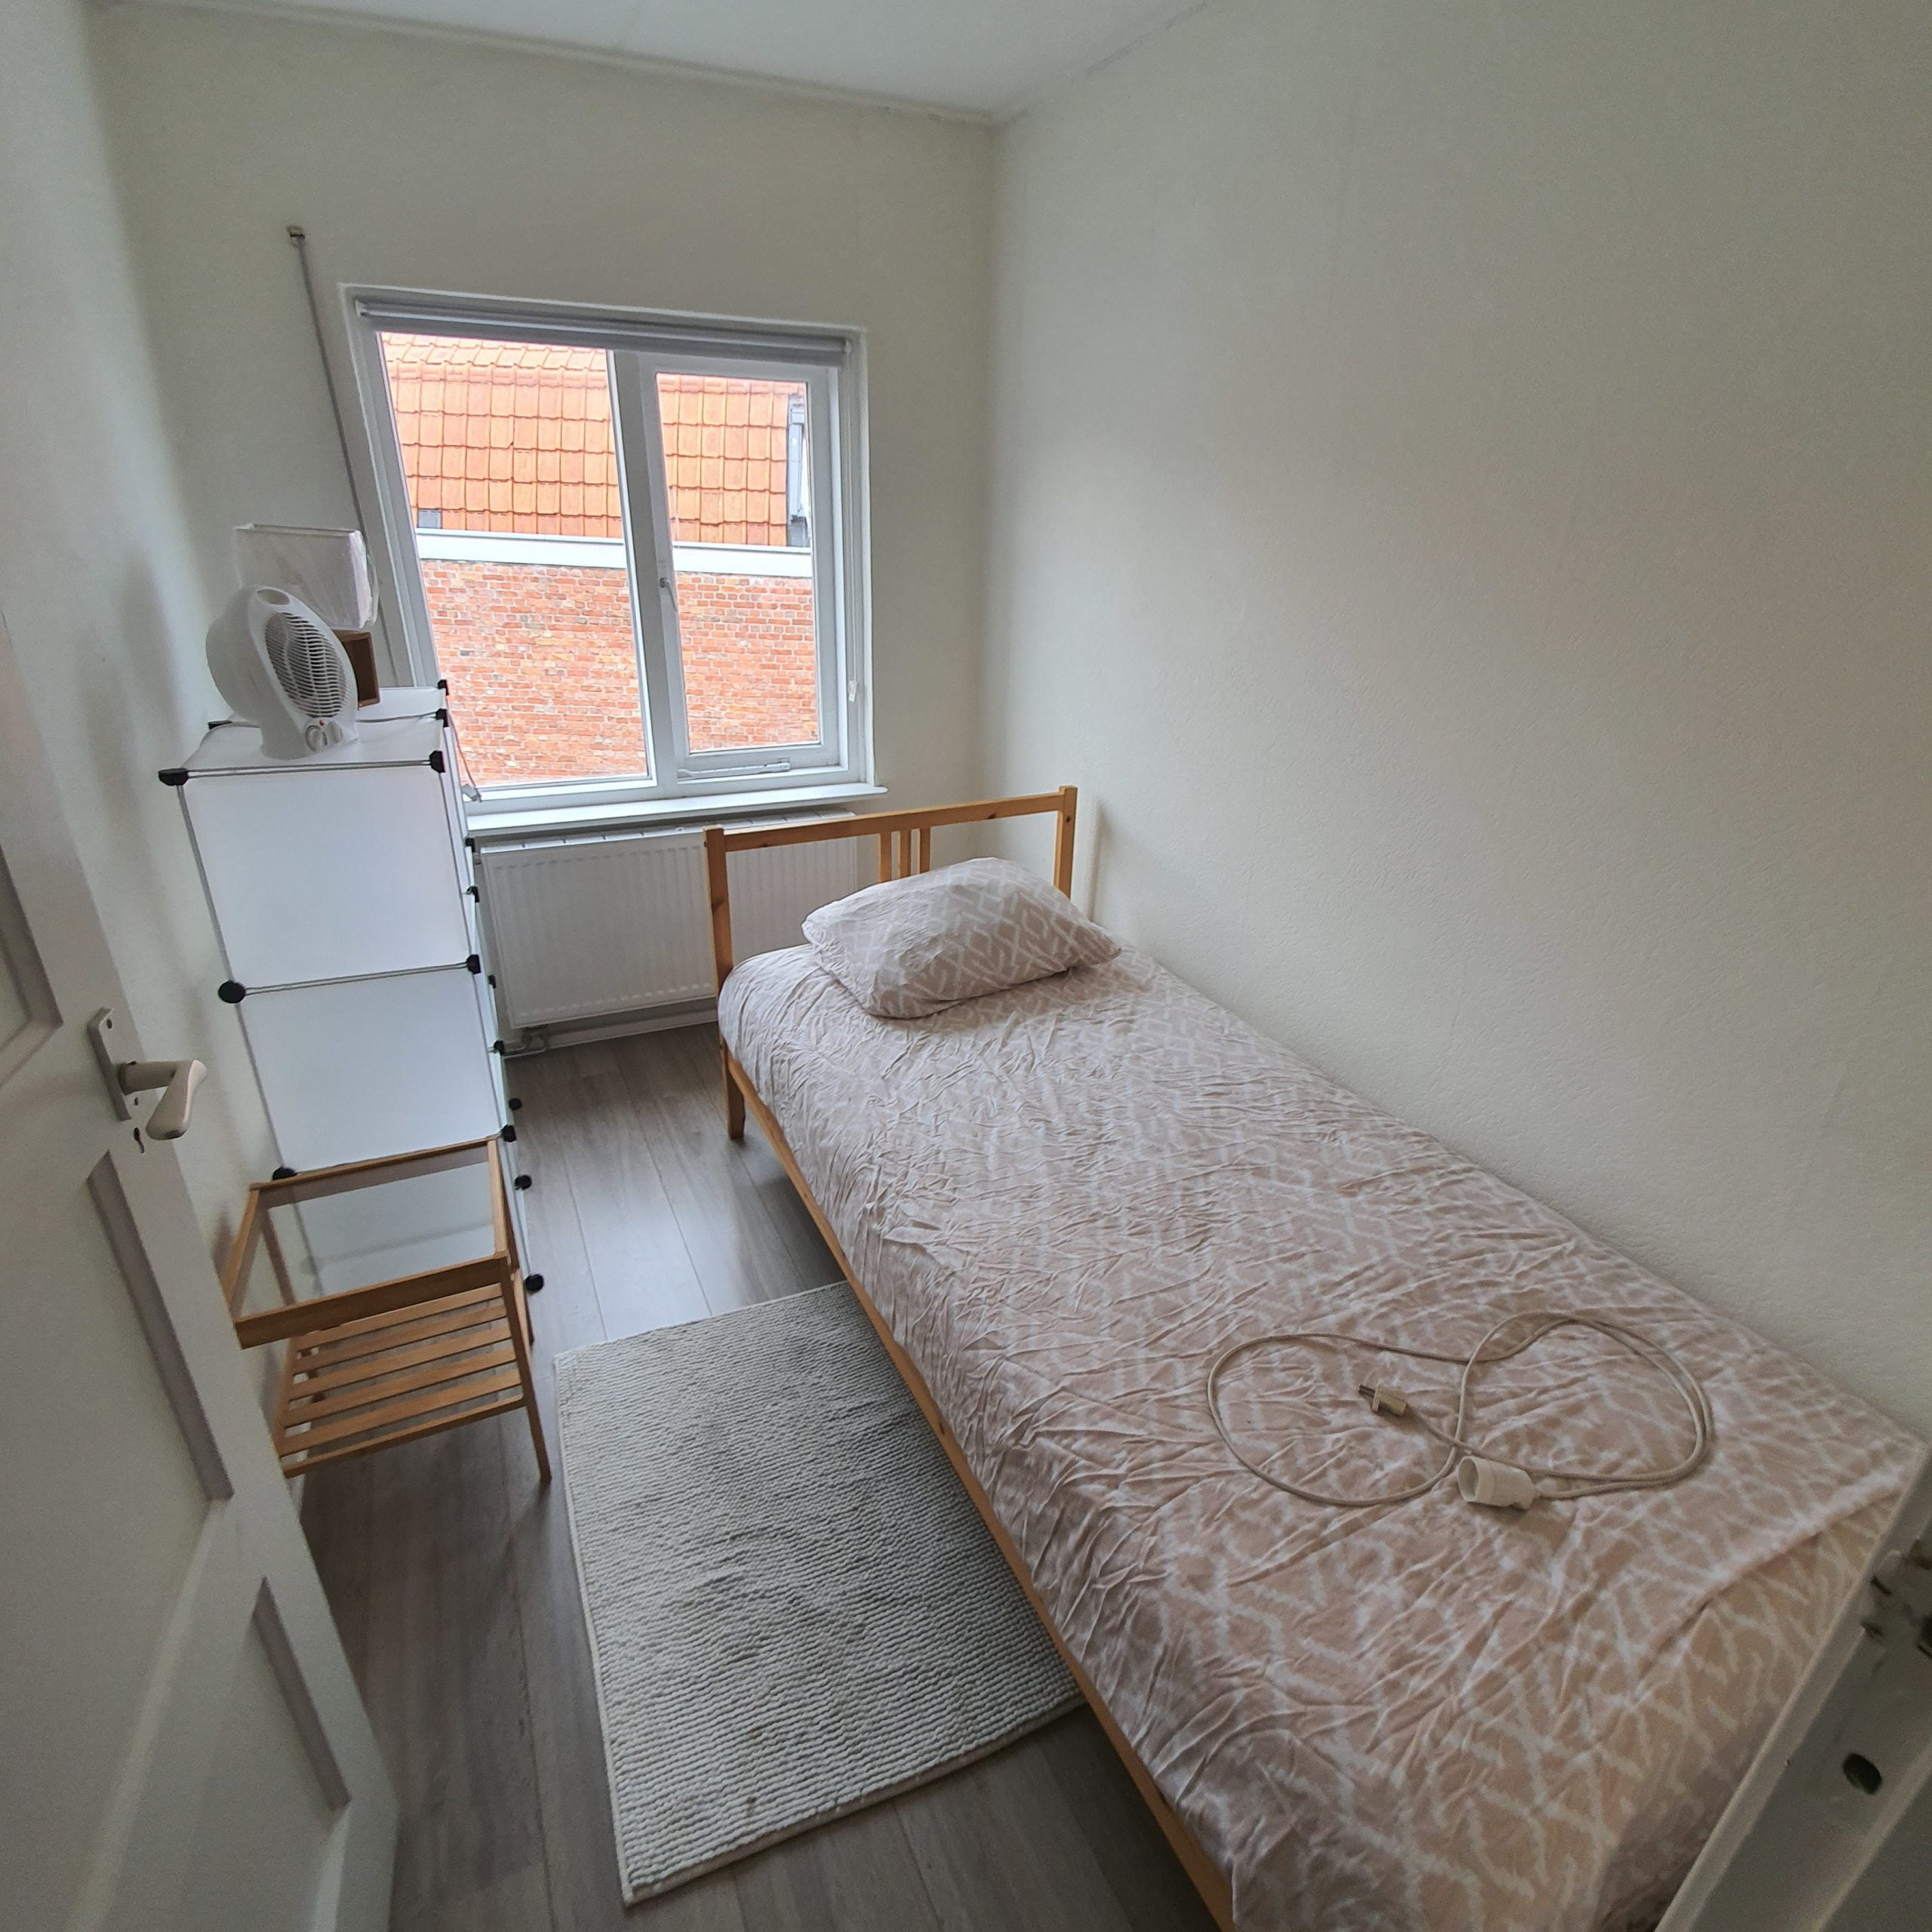 Expat house for rent in Terneuzen